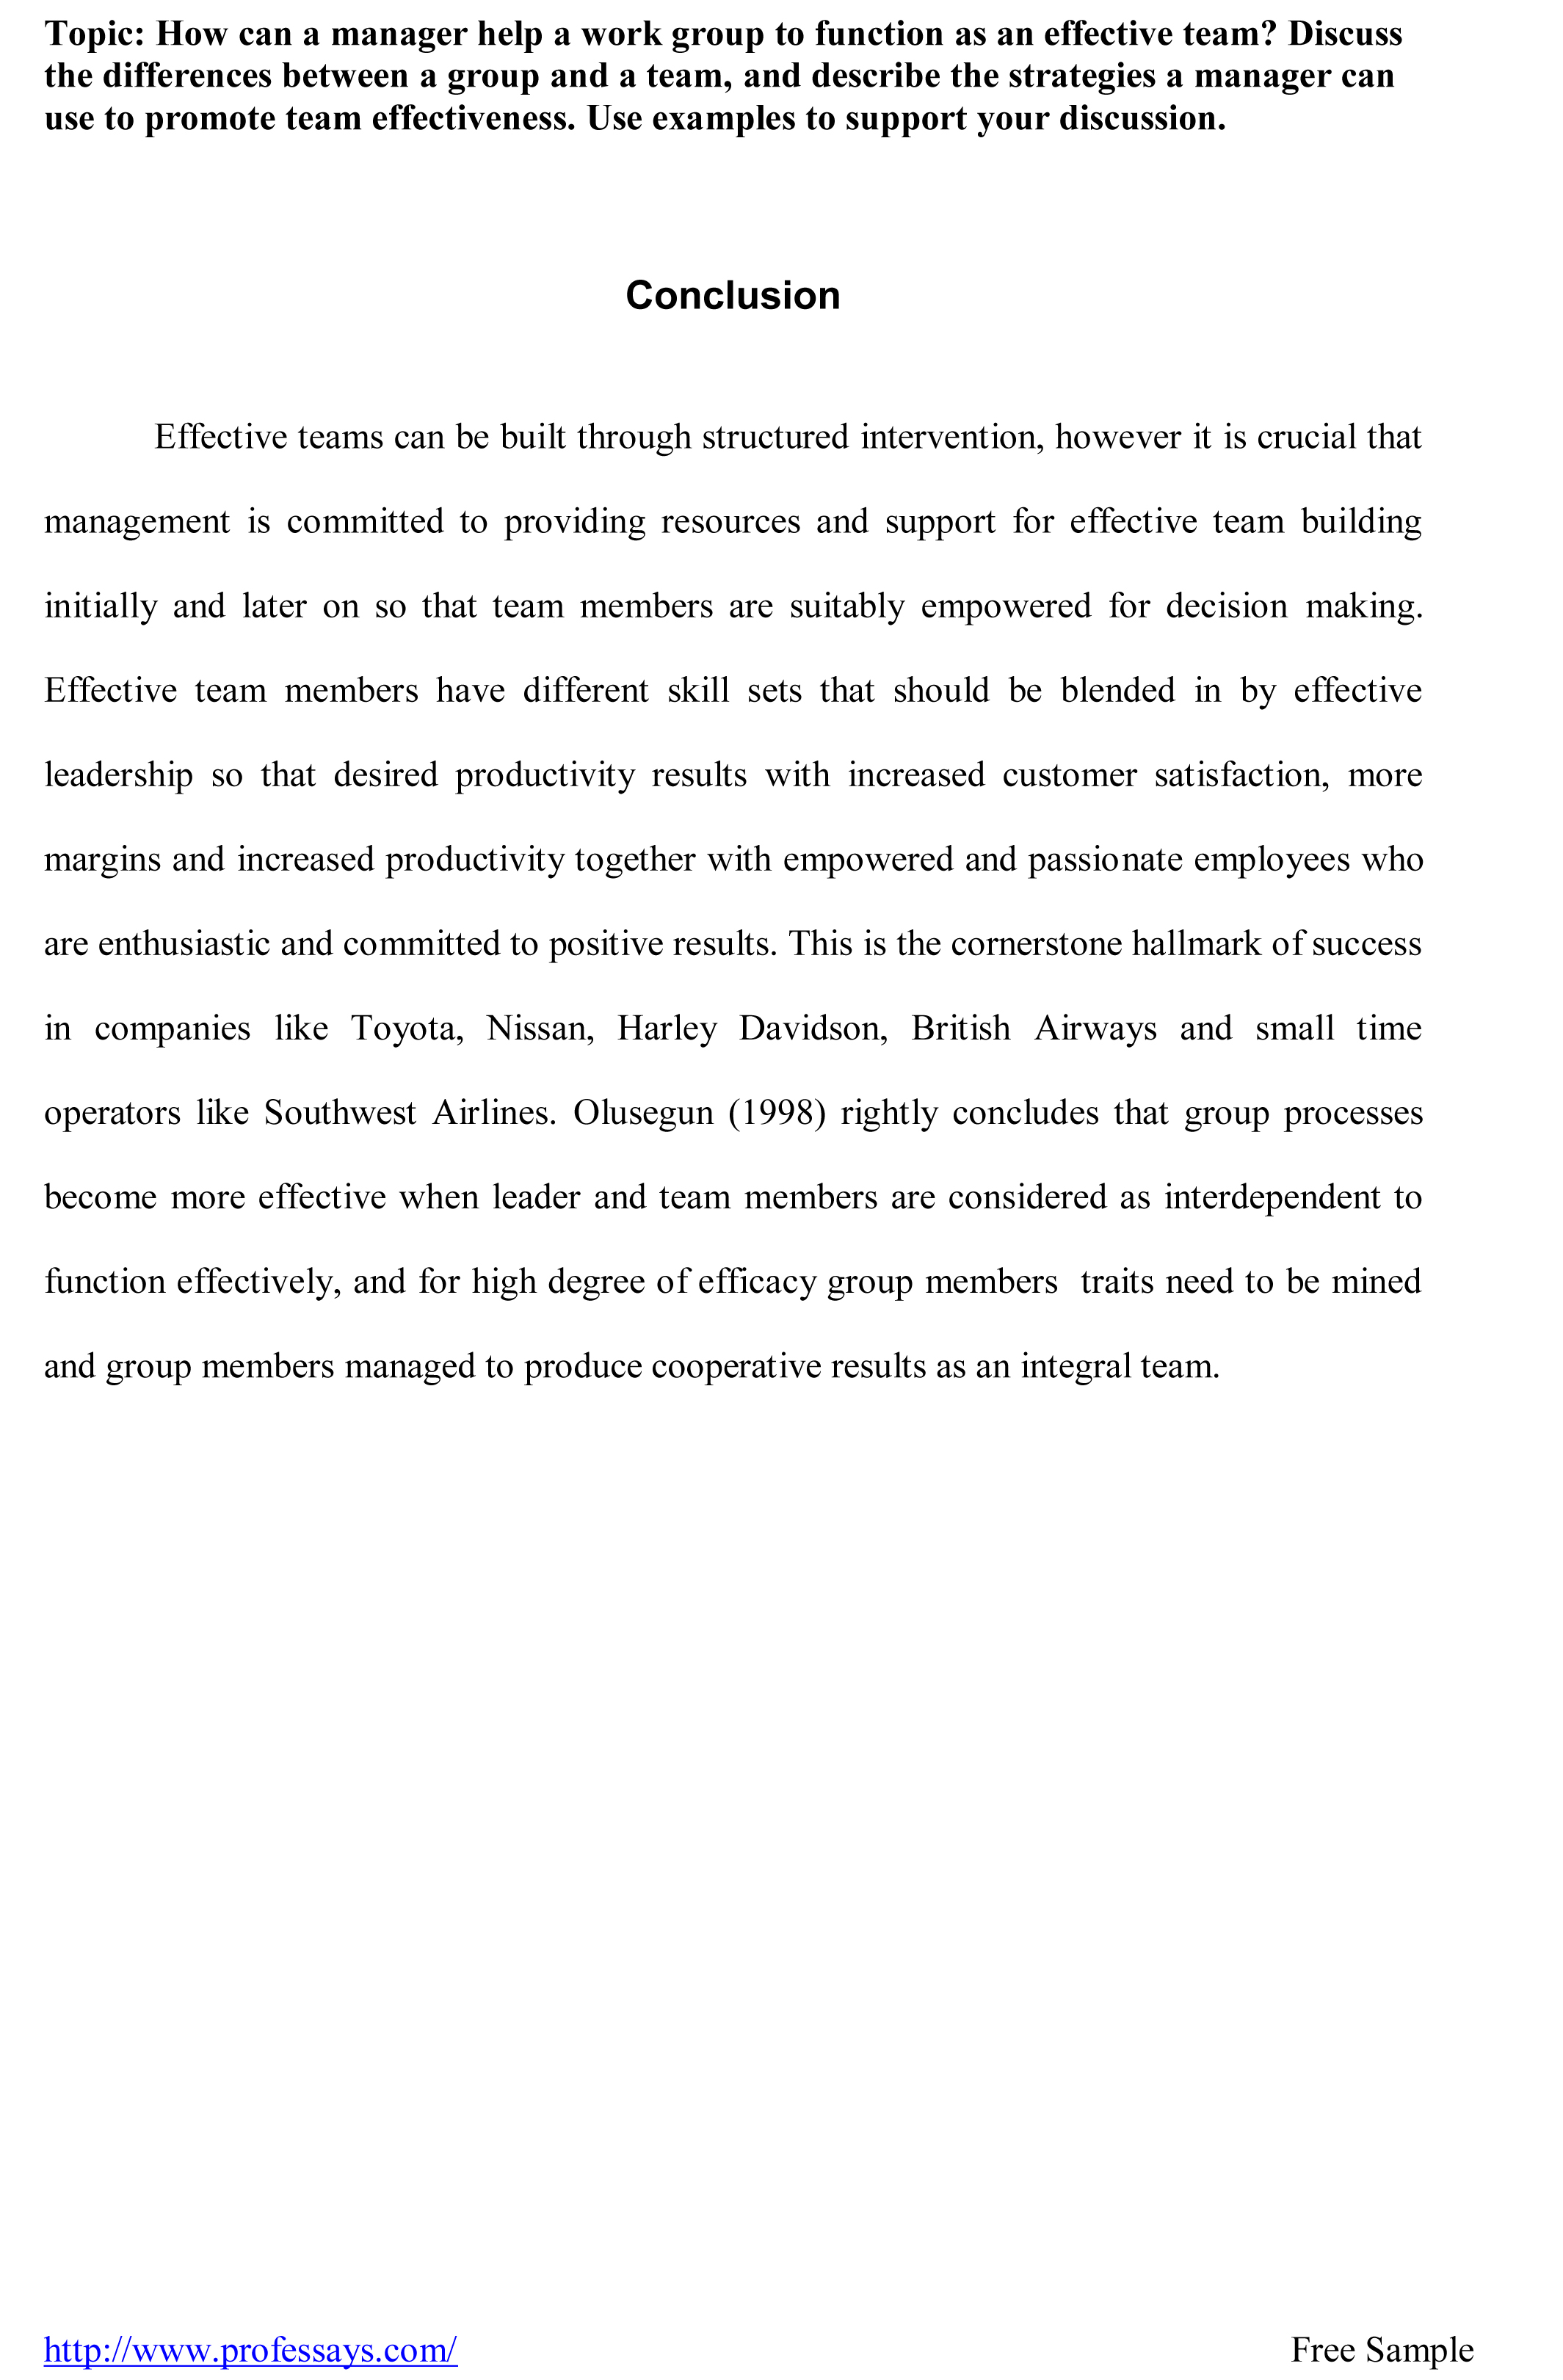 007 Research Paper Help Writing Papers Conclusion Sample For Outstanding My Full